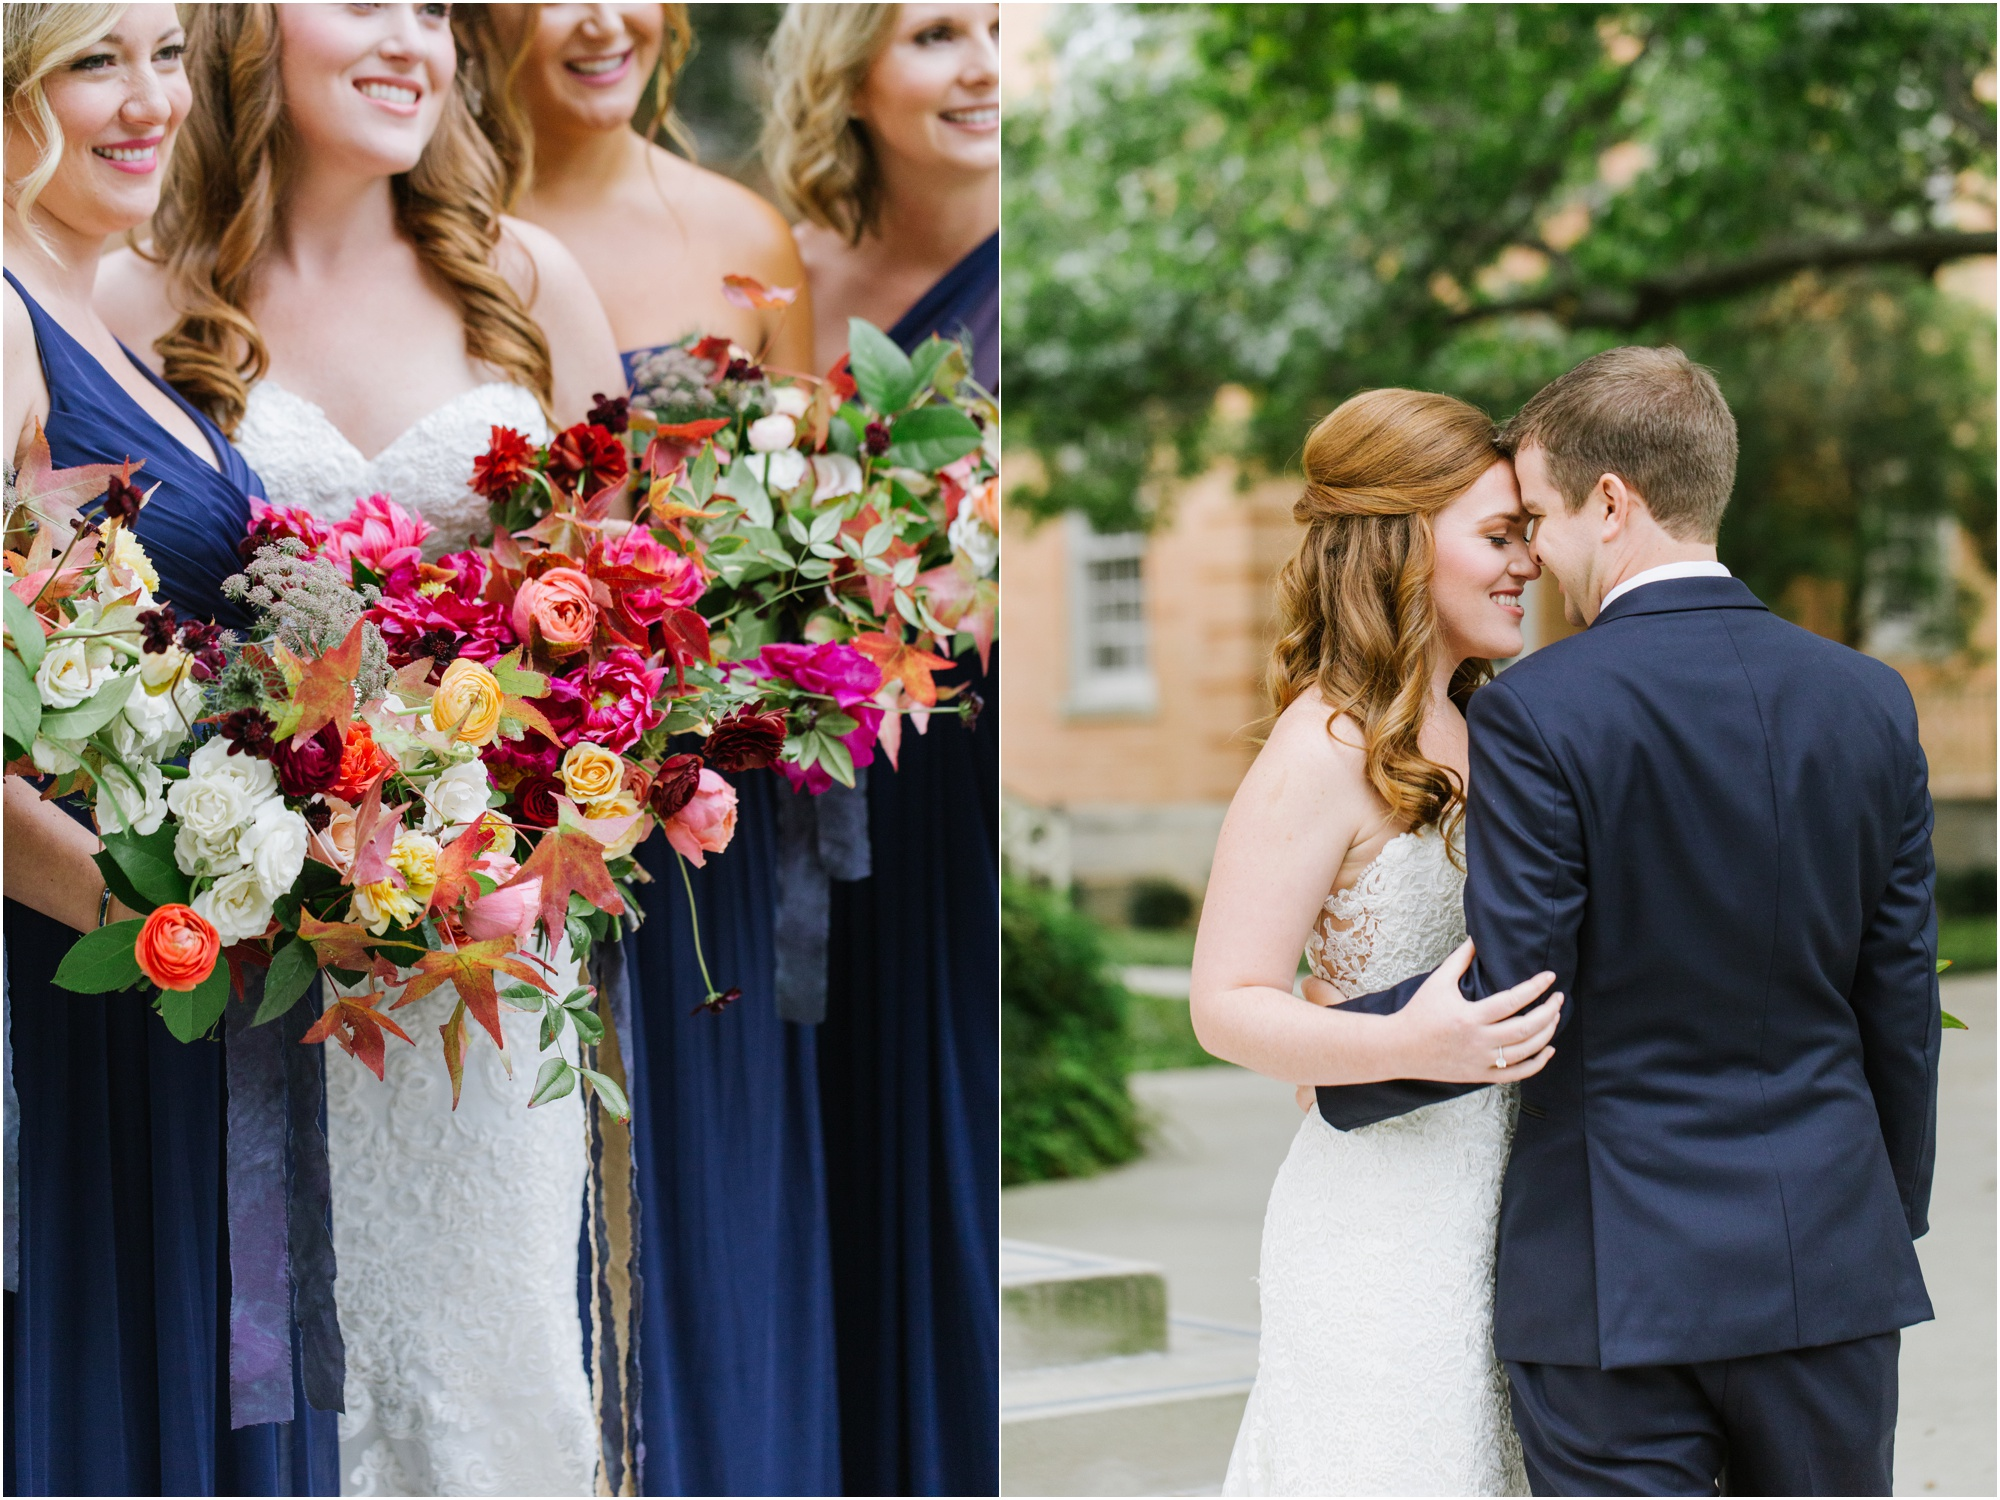 dallasweddingphotographer_mattandjulieweddings_fortworthweddingphotographer_0193.jpg